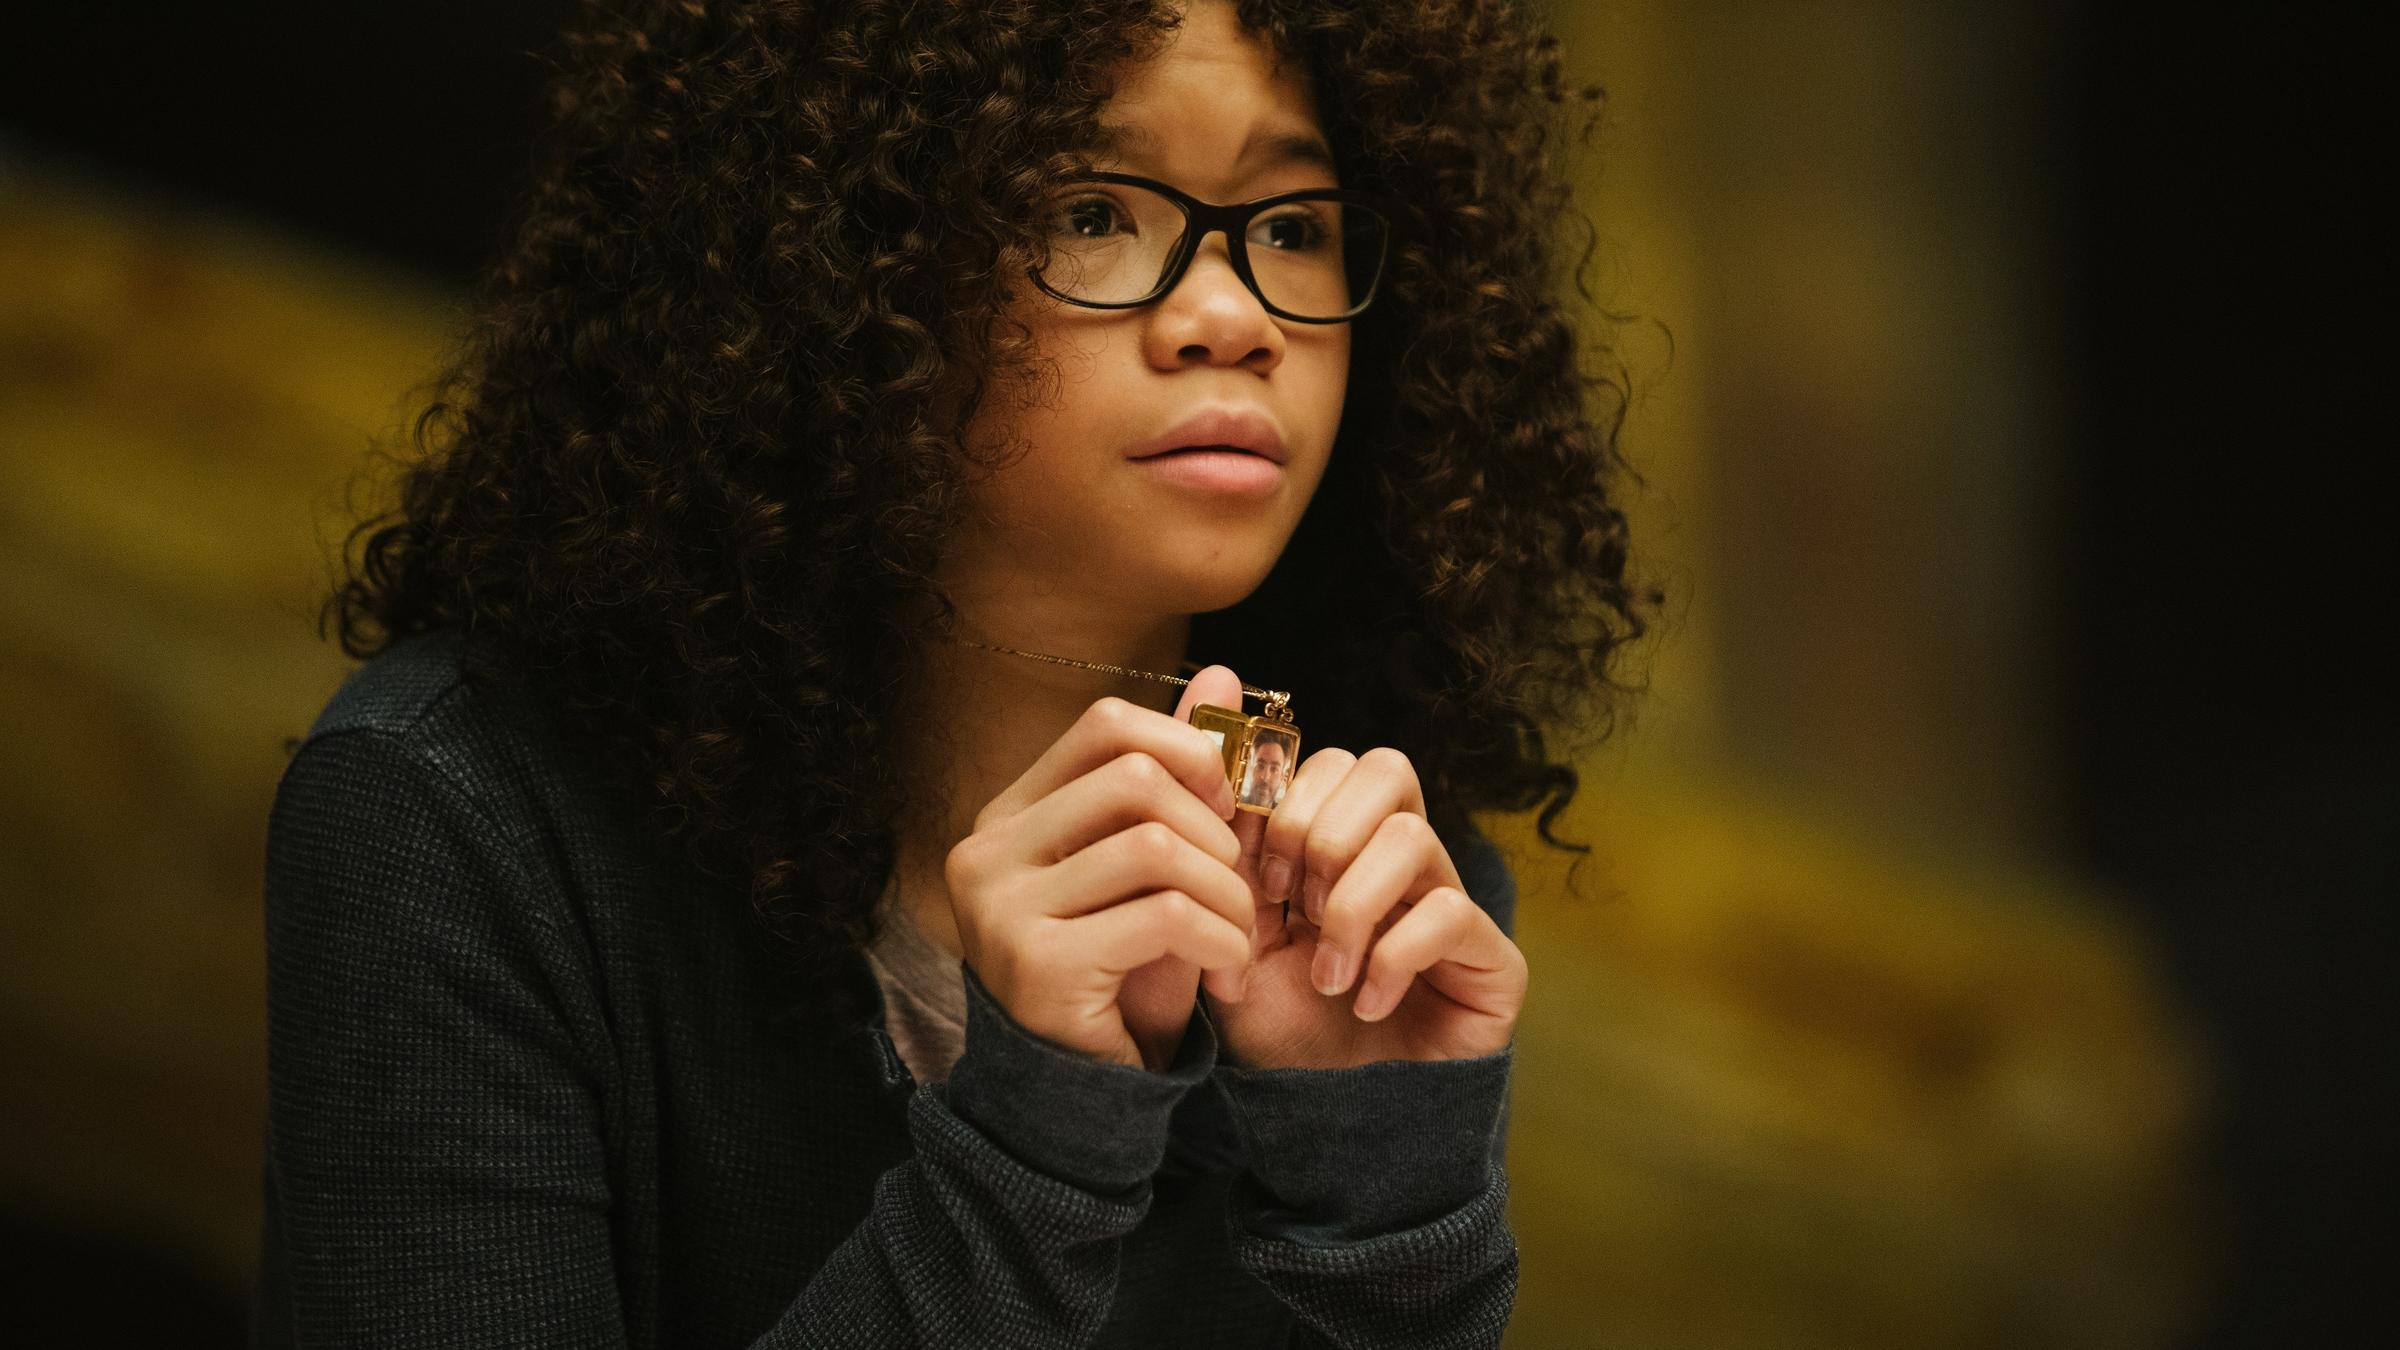 Storm Reid plays Meg Murry in Disney's A Wrinkle In Time based on the acclaimed book by Madeleine L'Engle